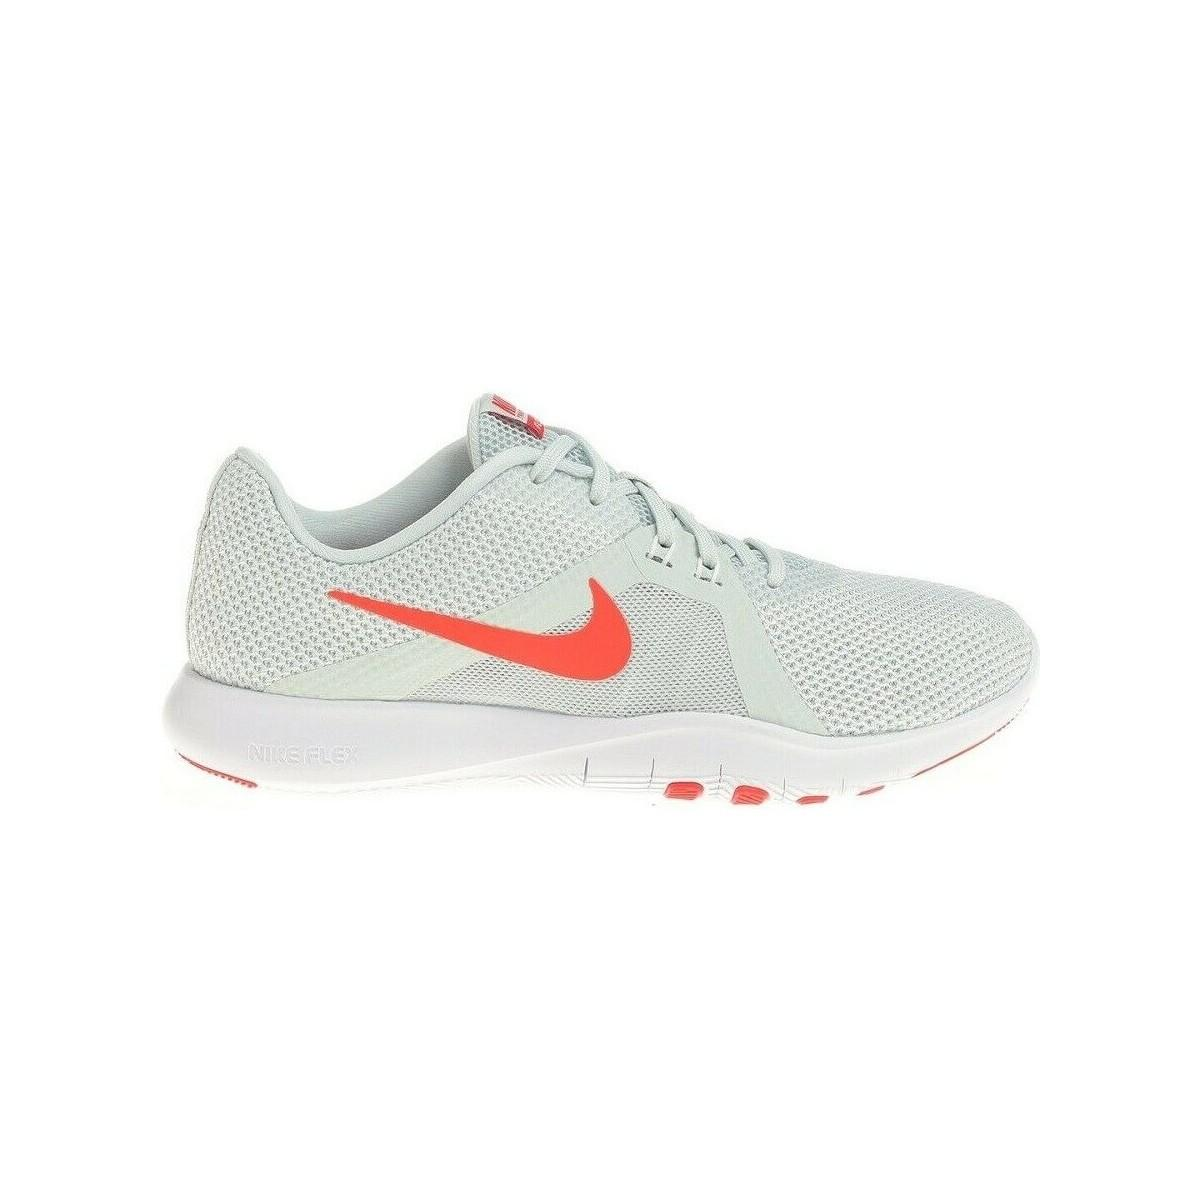 51a0d4a210e4 Nike - Gray Flex Tr 8 924339 Women s Shoes (trainers) In Grey - Lyst. View  fullscreen